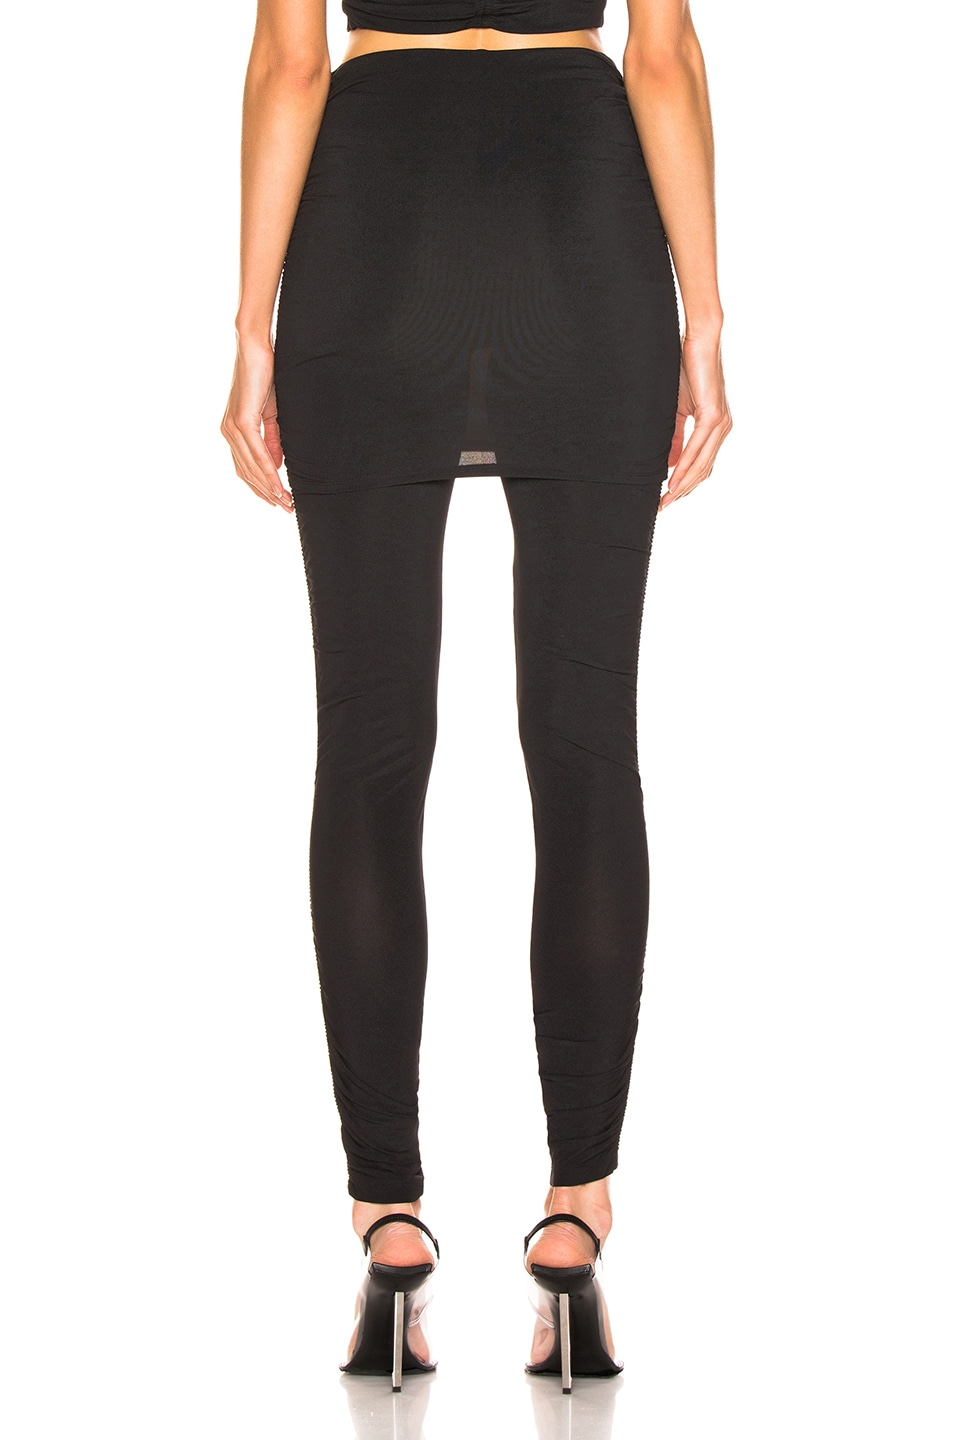 Image 3 of T by Alexander Wang Crepe Twist Legging in Black